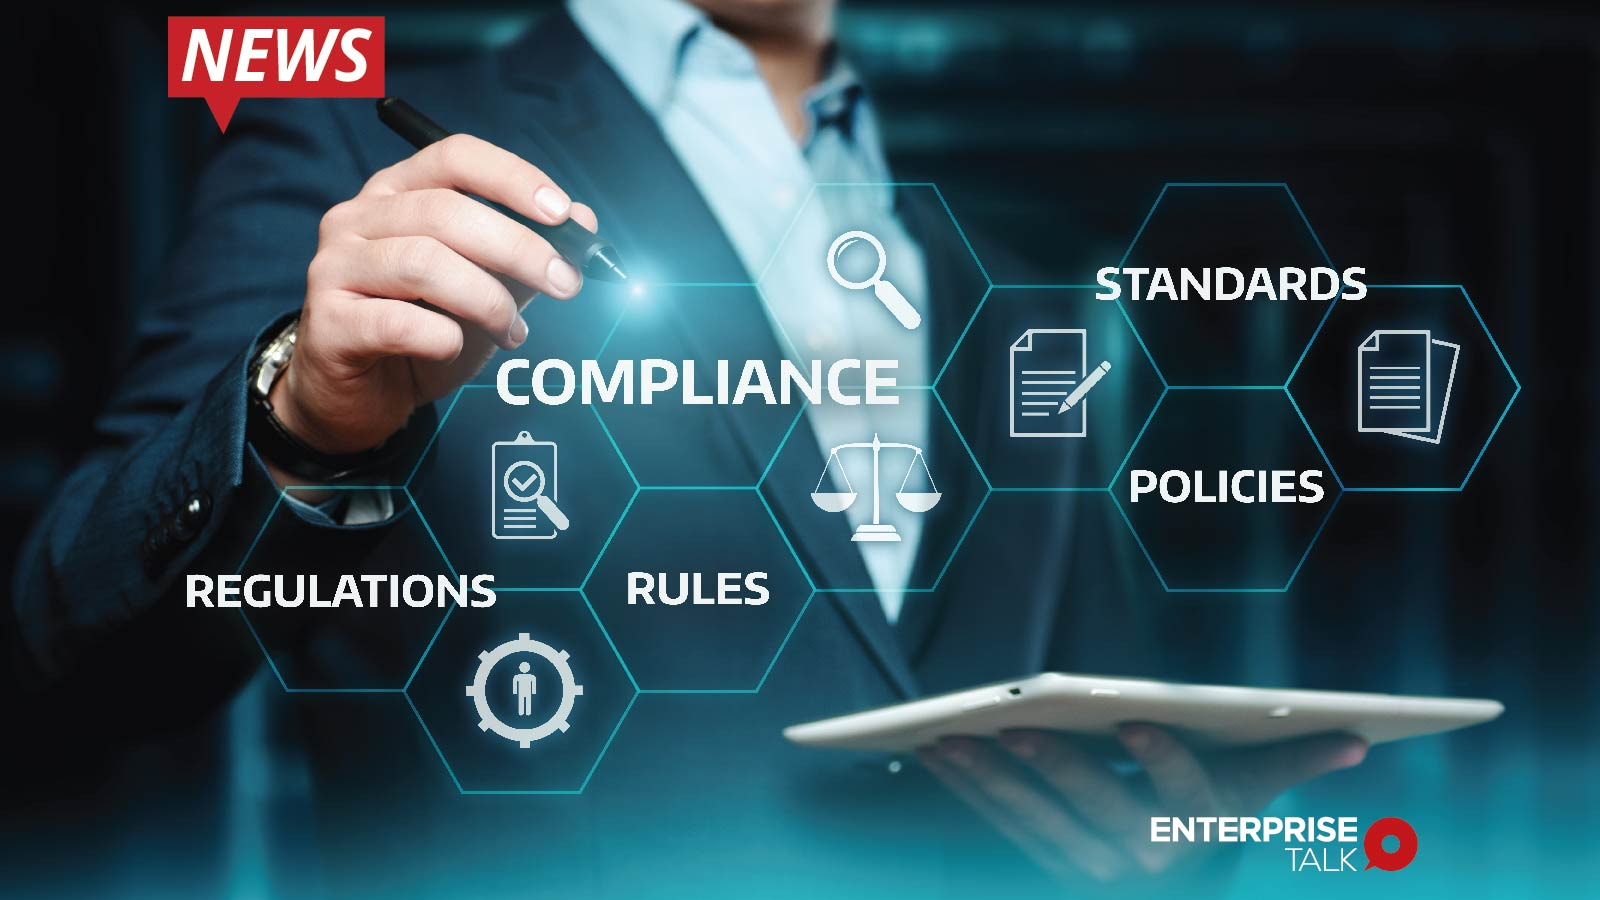 Mitratech acquires Tracker Corp_ adding leading I-9 and Immigration Management solutions to its legal and compliance technology portfolio